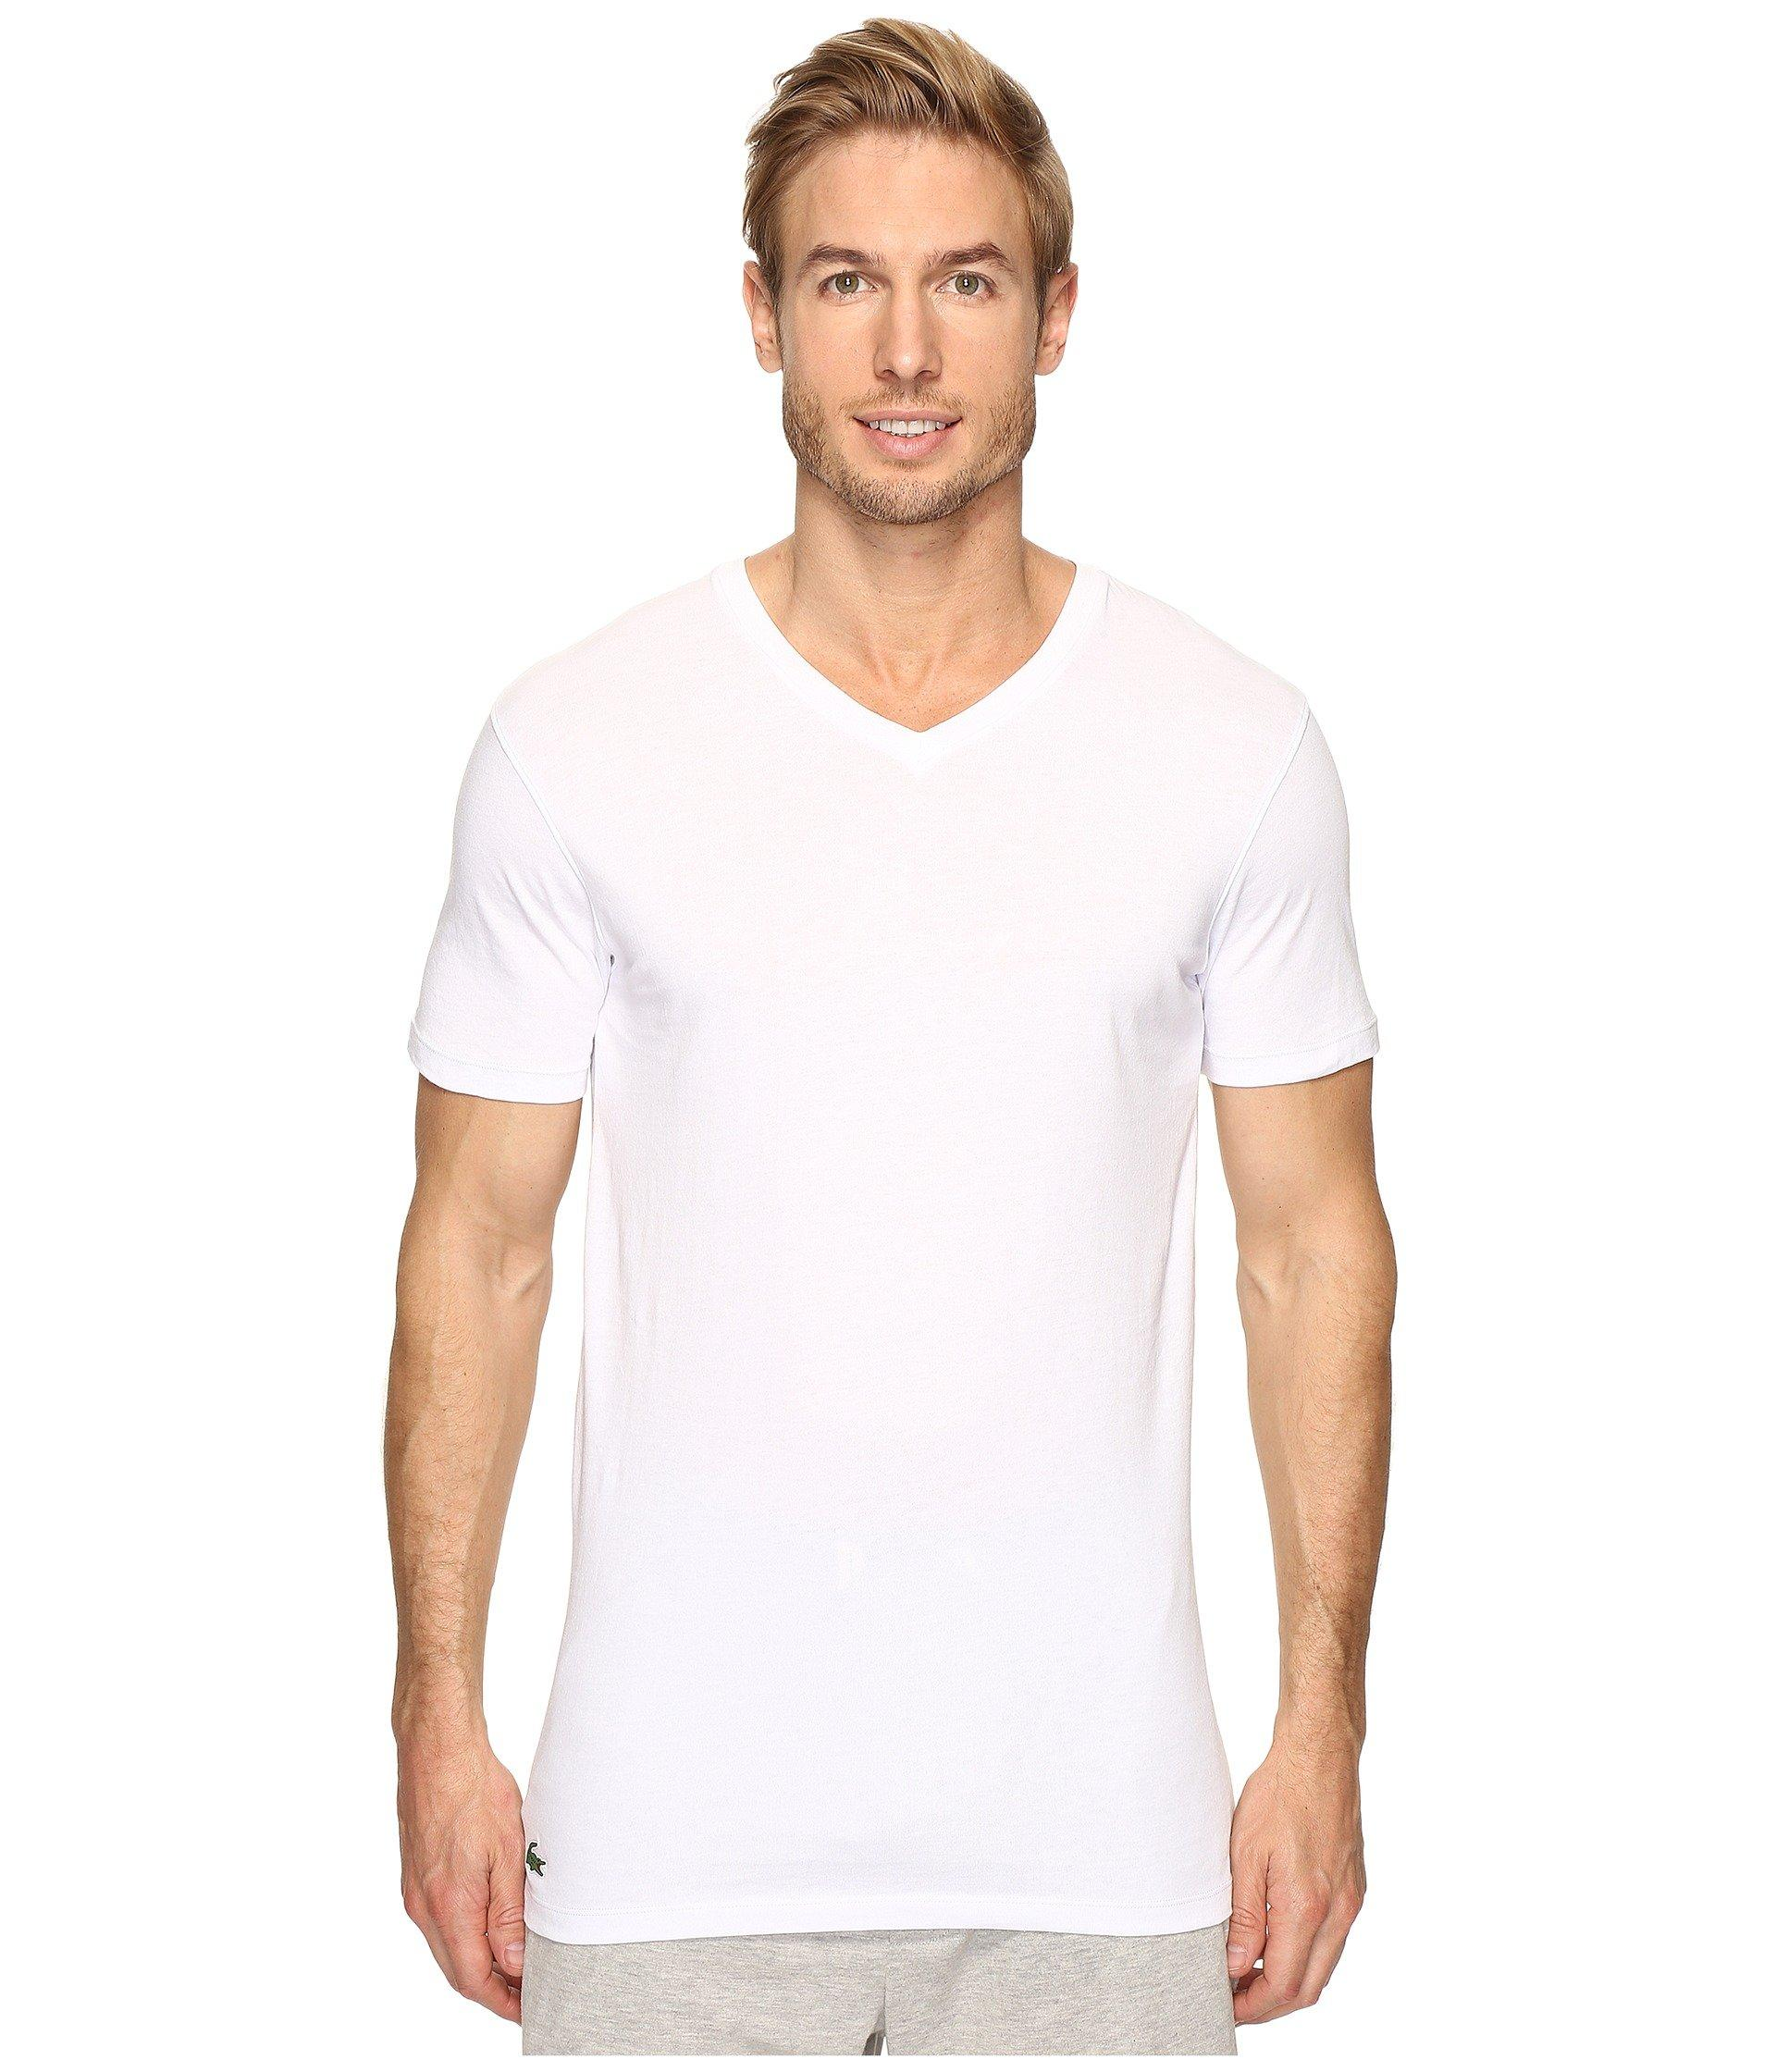 a1646d4a Lacoste Essentials 3-pack V-neck Tee in White for Men - Lyst